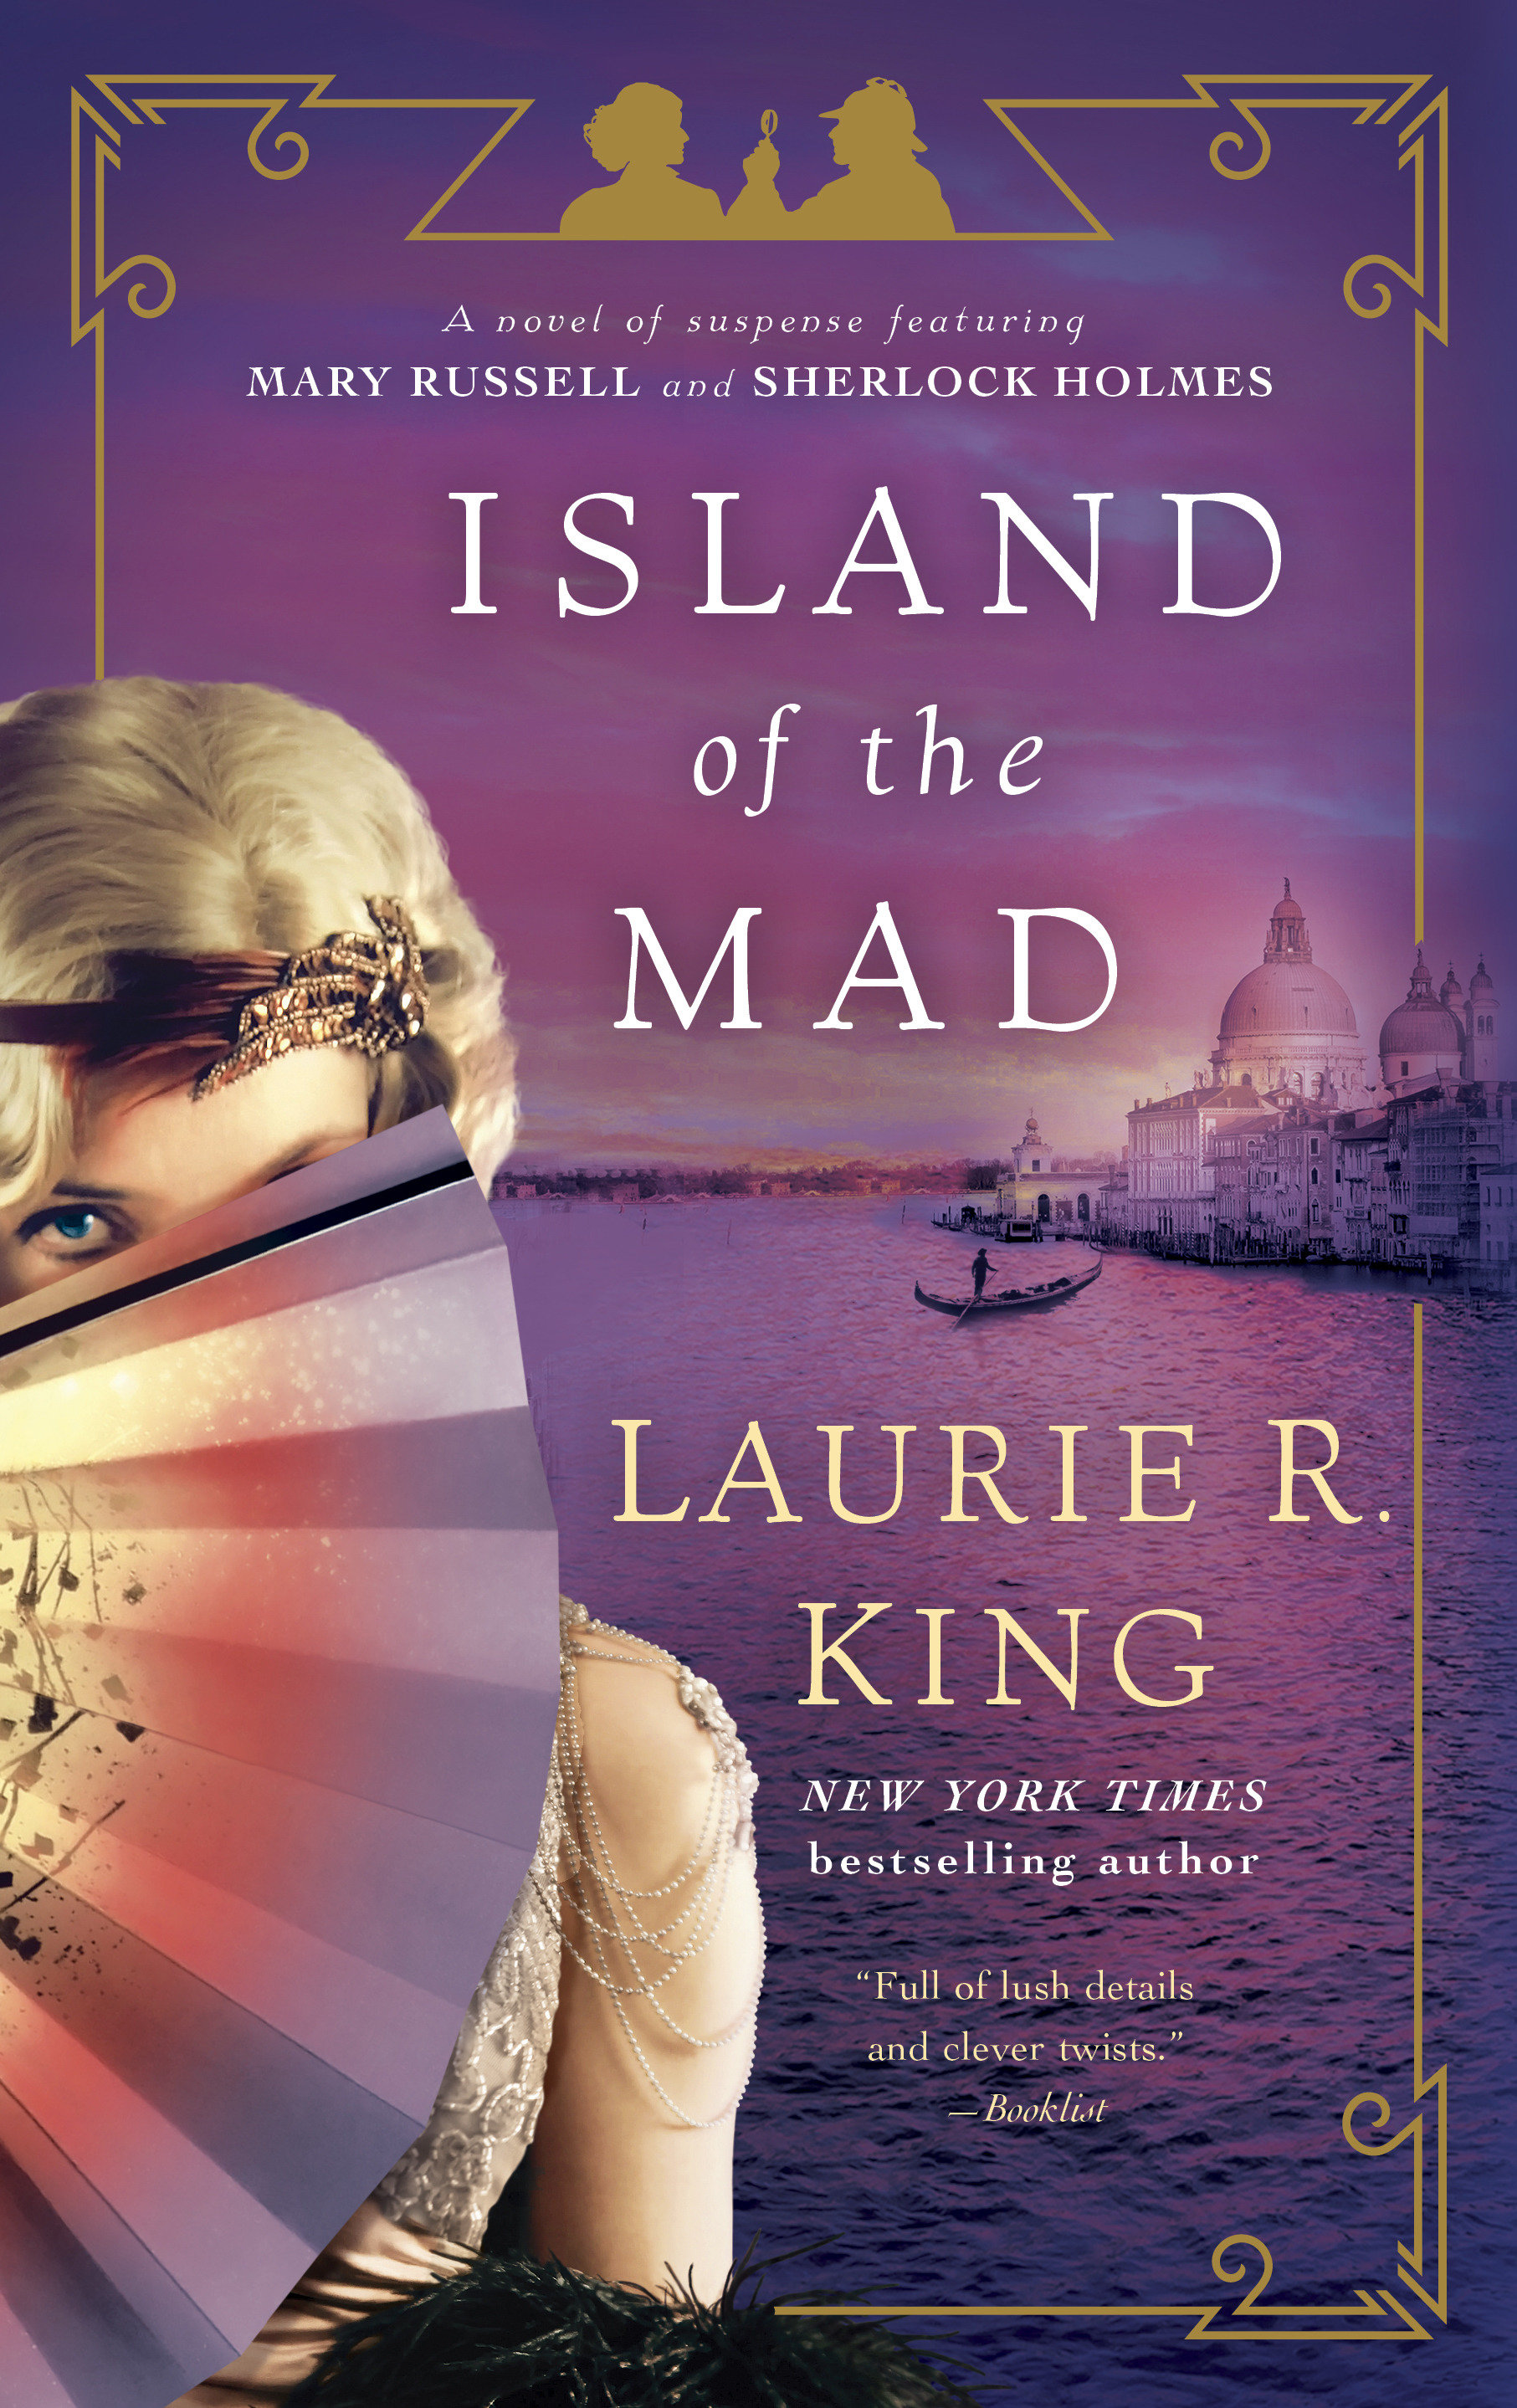 Island of the Mad A novel of suspense featuring Mary Russell and Sherlock Holmes